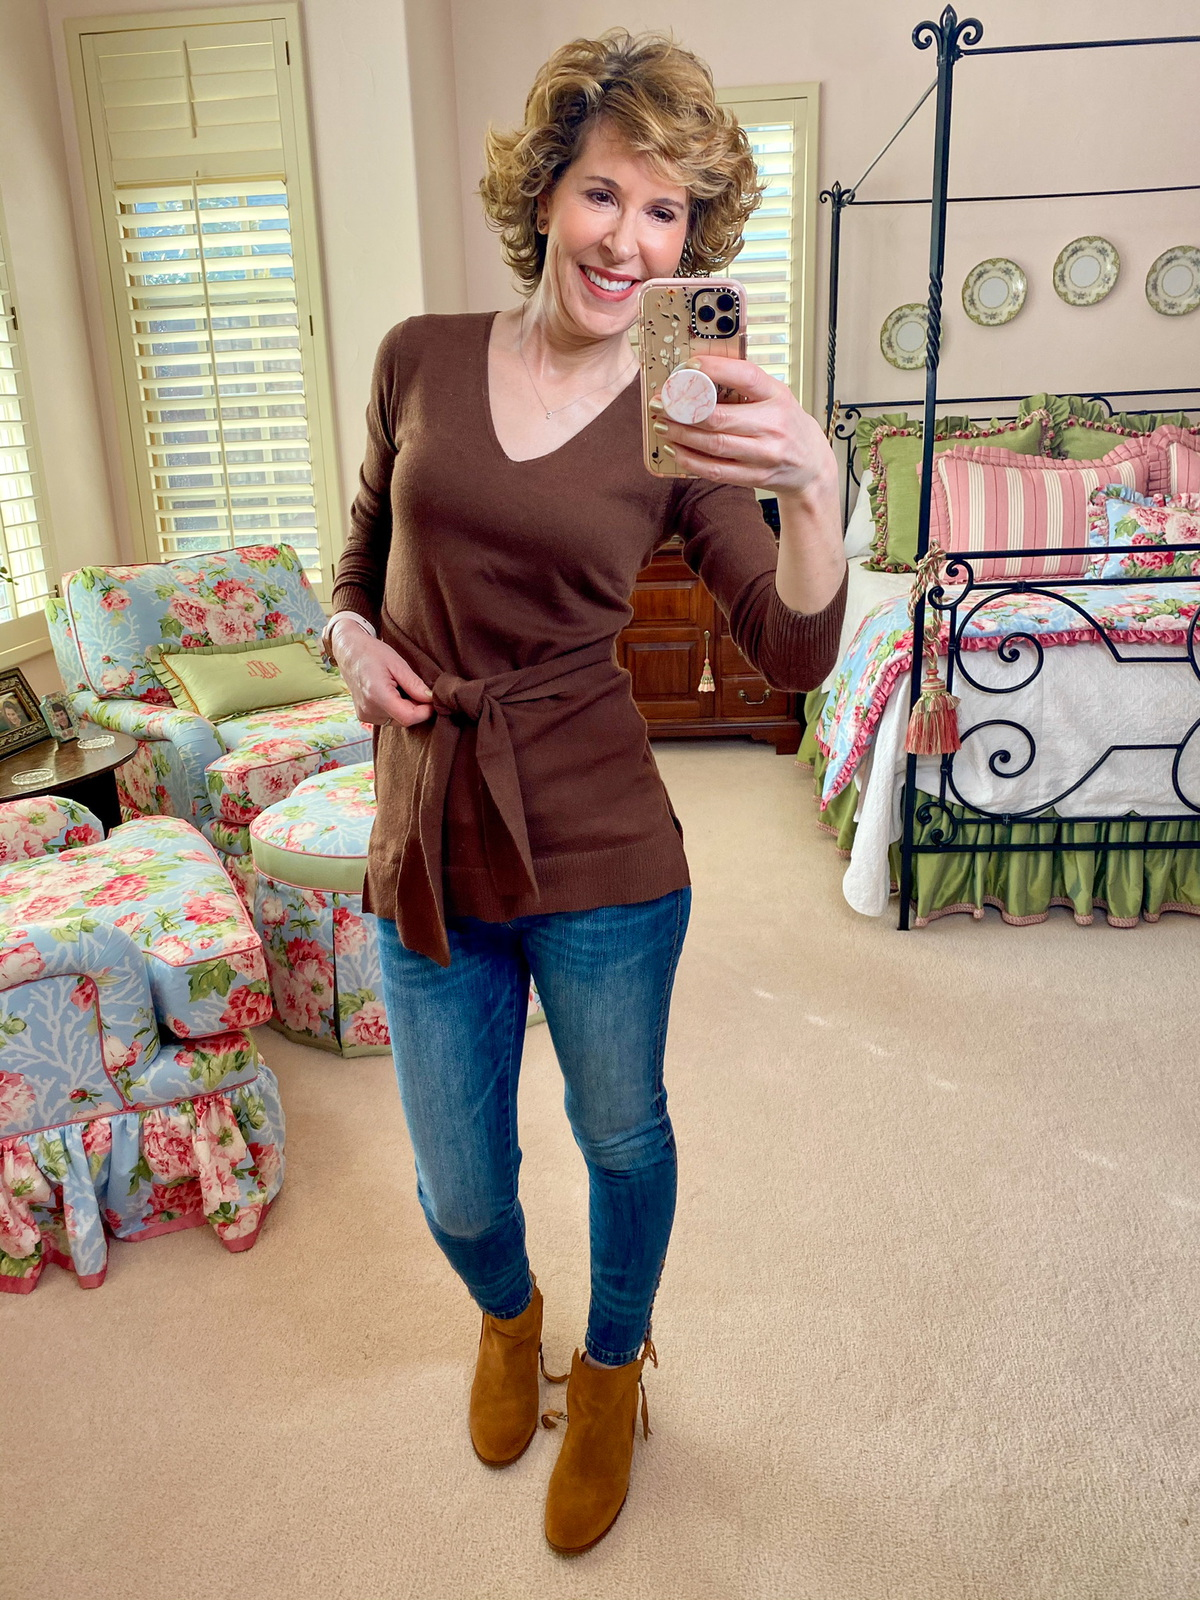 mirror selfie of woman in brown sweater and jeans with brown booties